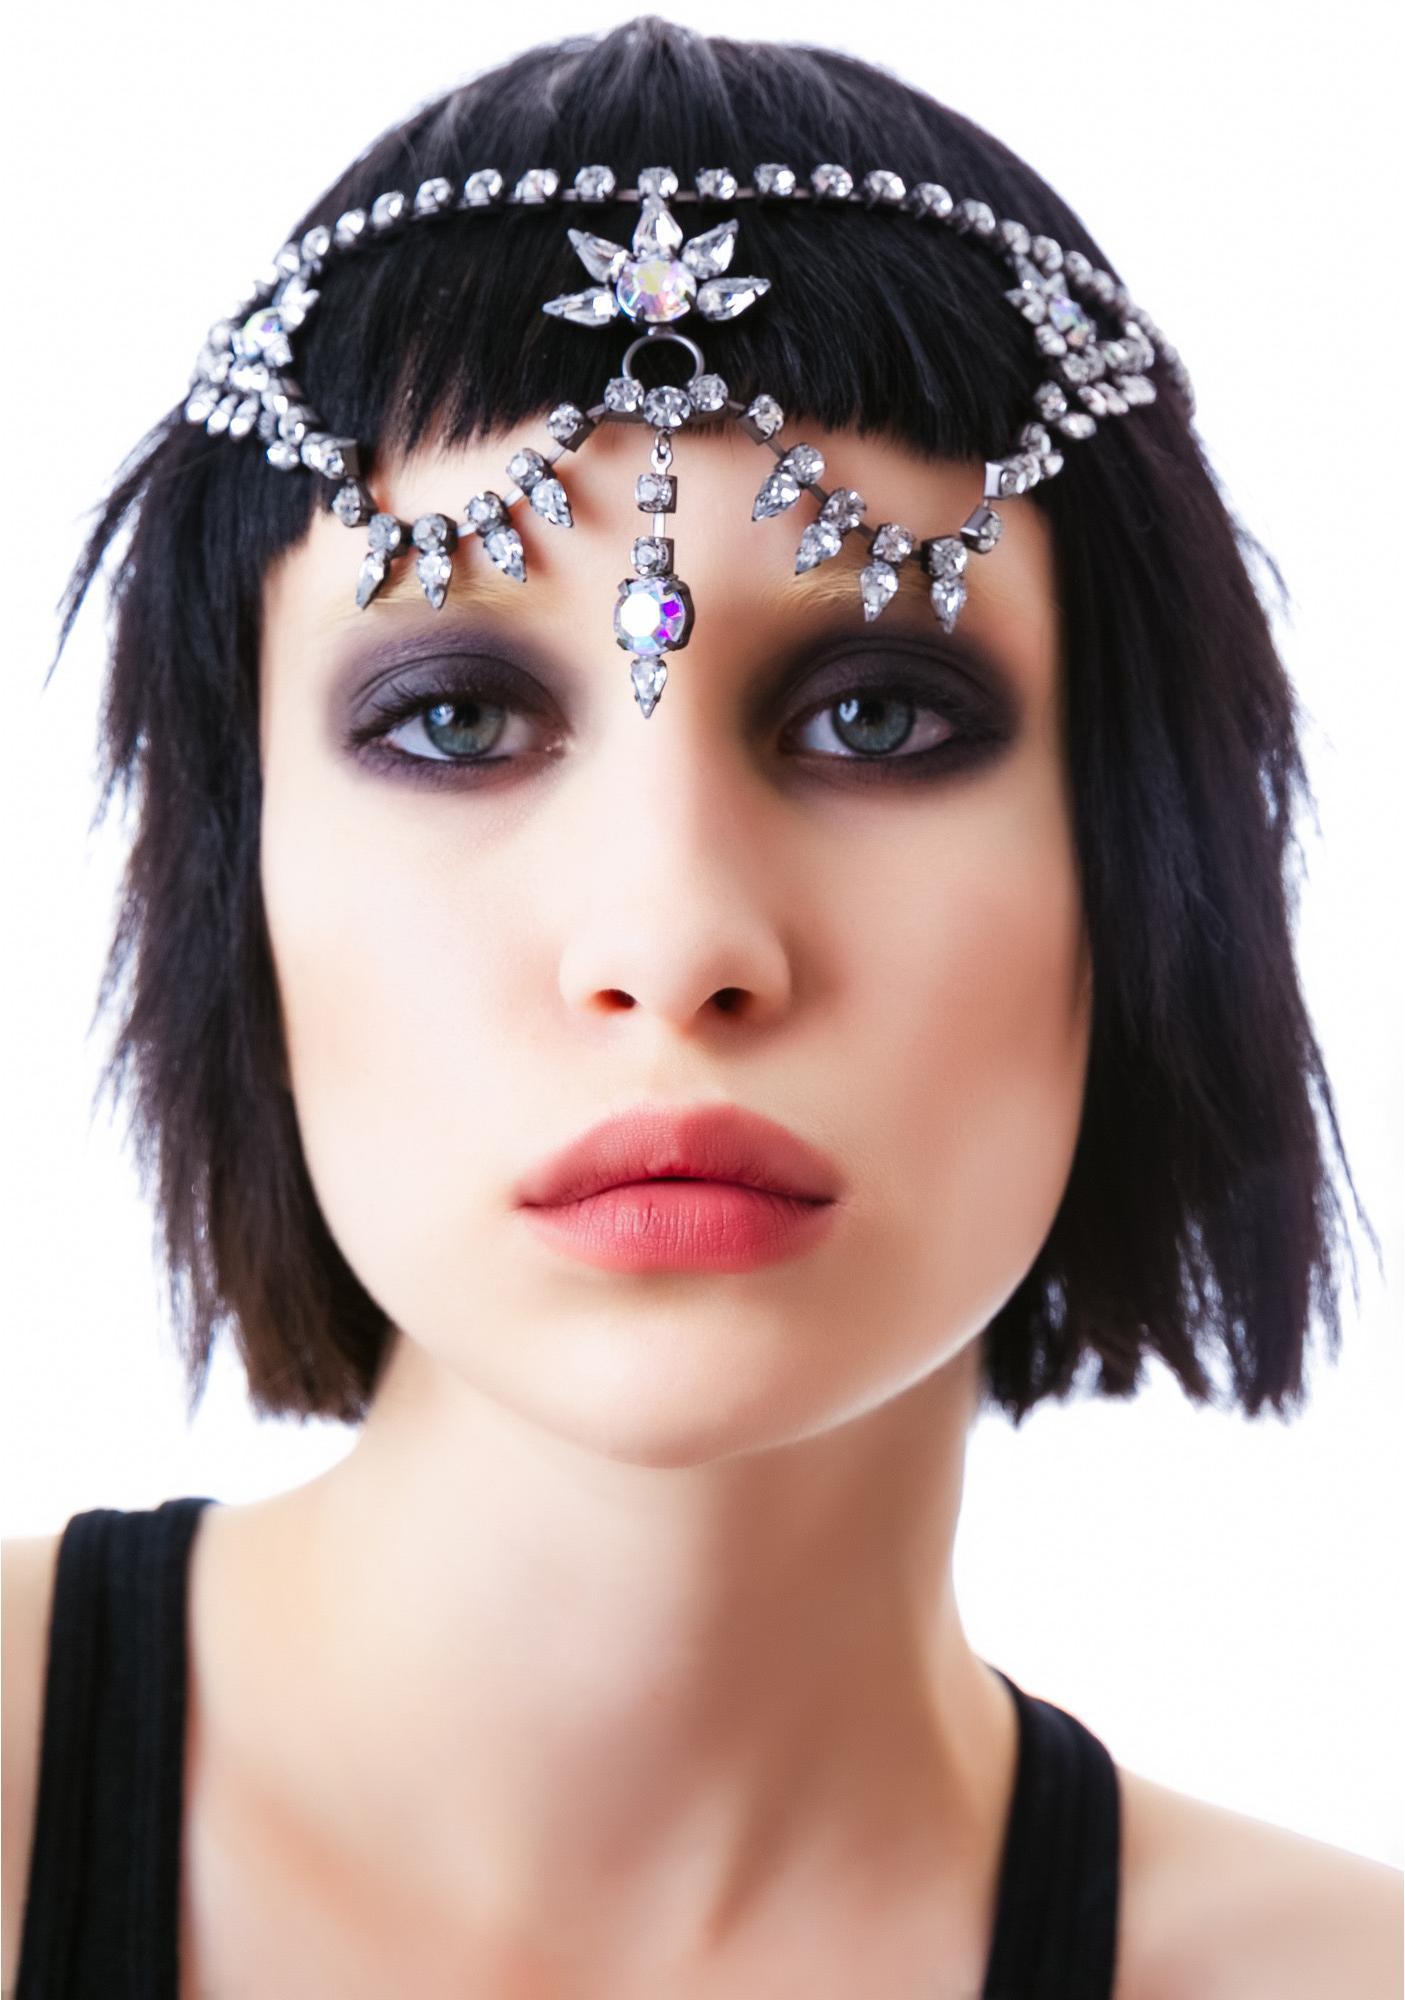 8 Other Reasons Homage Headpiece